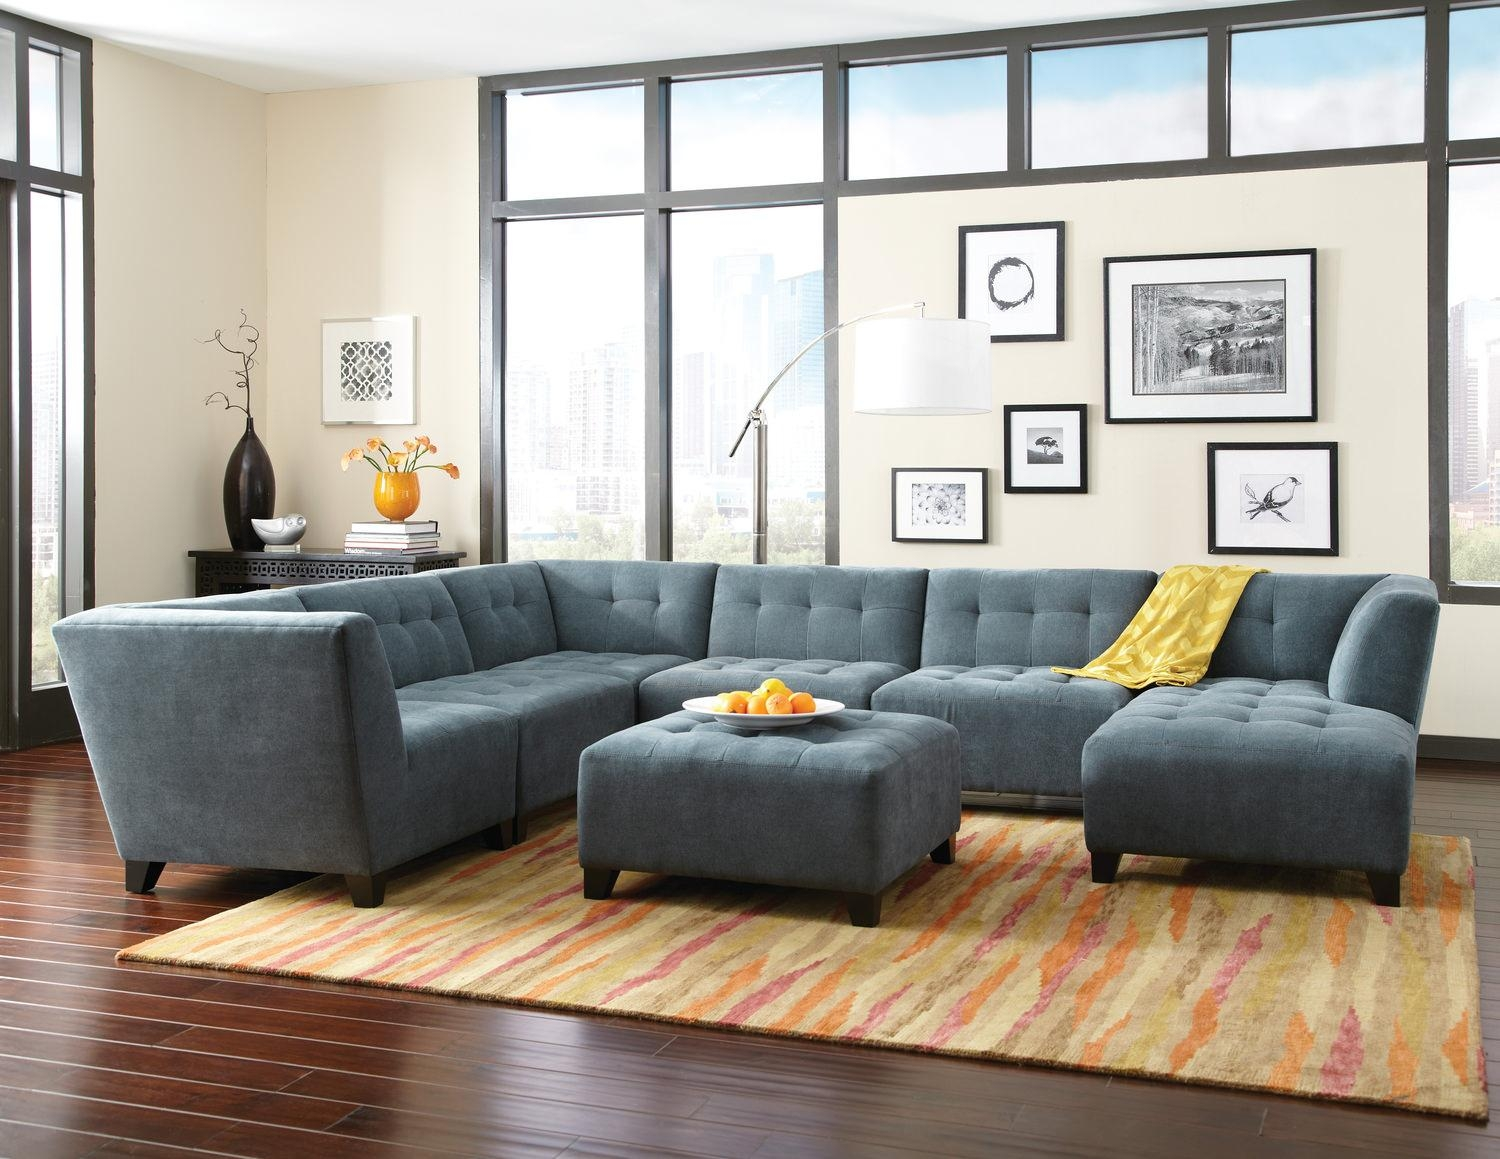 6 Piece Sectional Sofa | Best Sofas Ideas – Sofascouch With 6 Piece Sectional Sofas Couches (View 3 of 20)